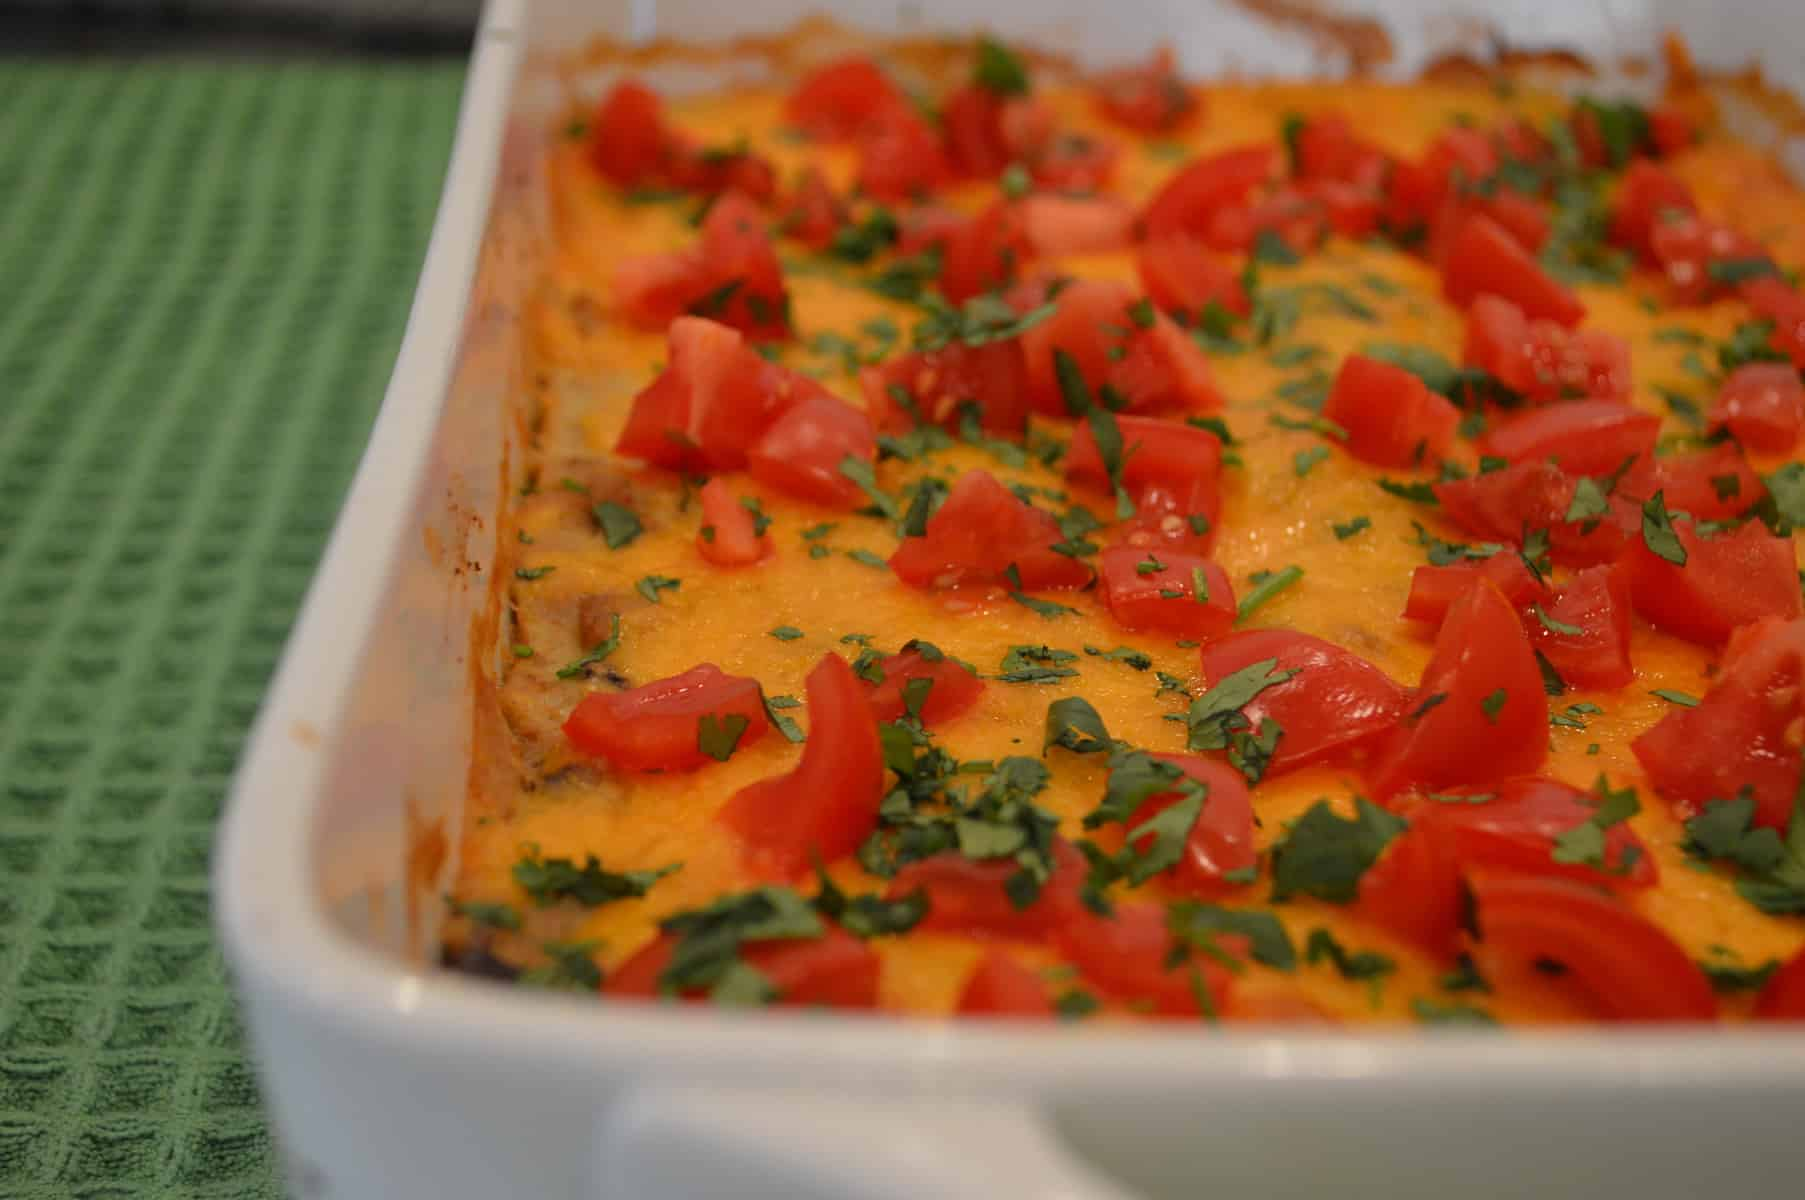 Green Enchilada Casserole in a white baking pan topped with tomatoes and cilantro